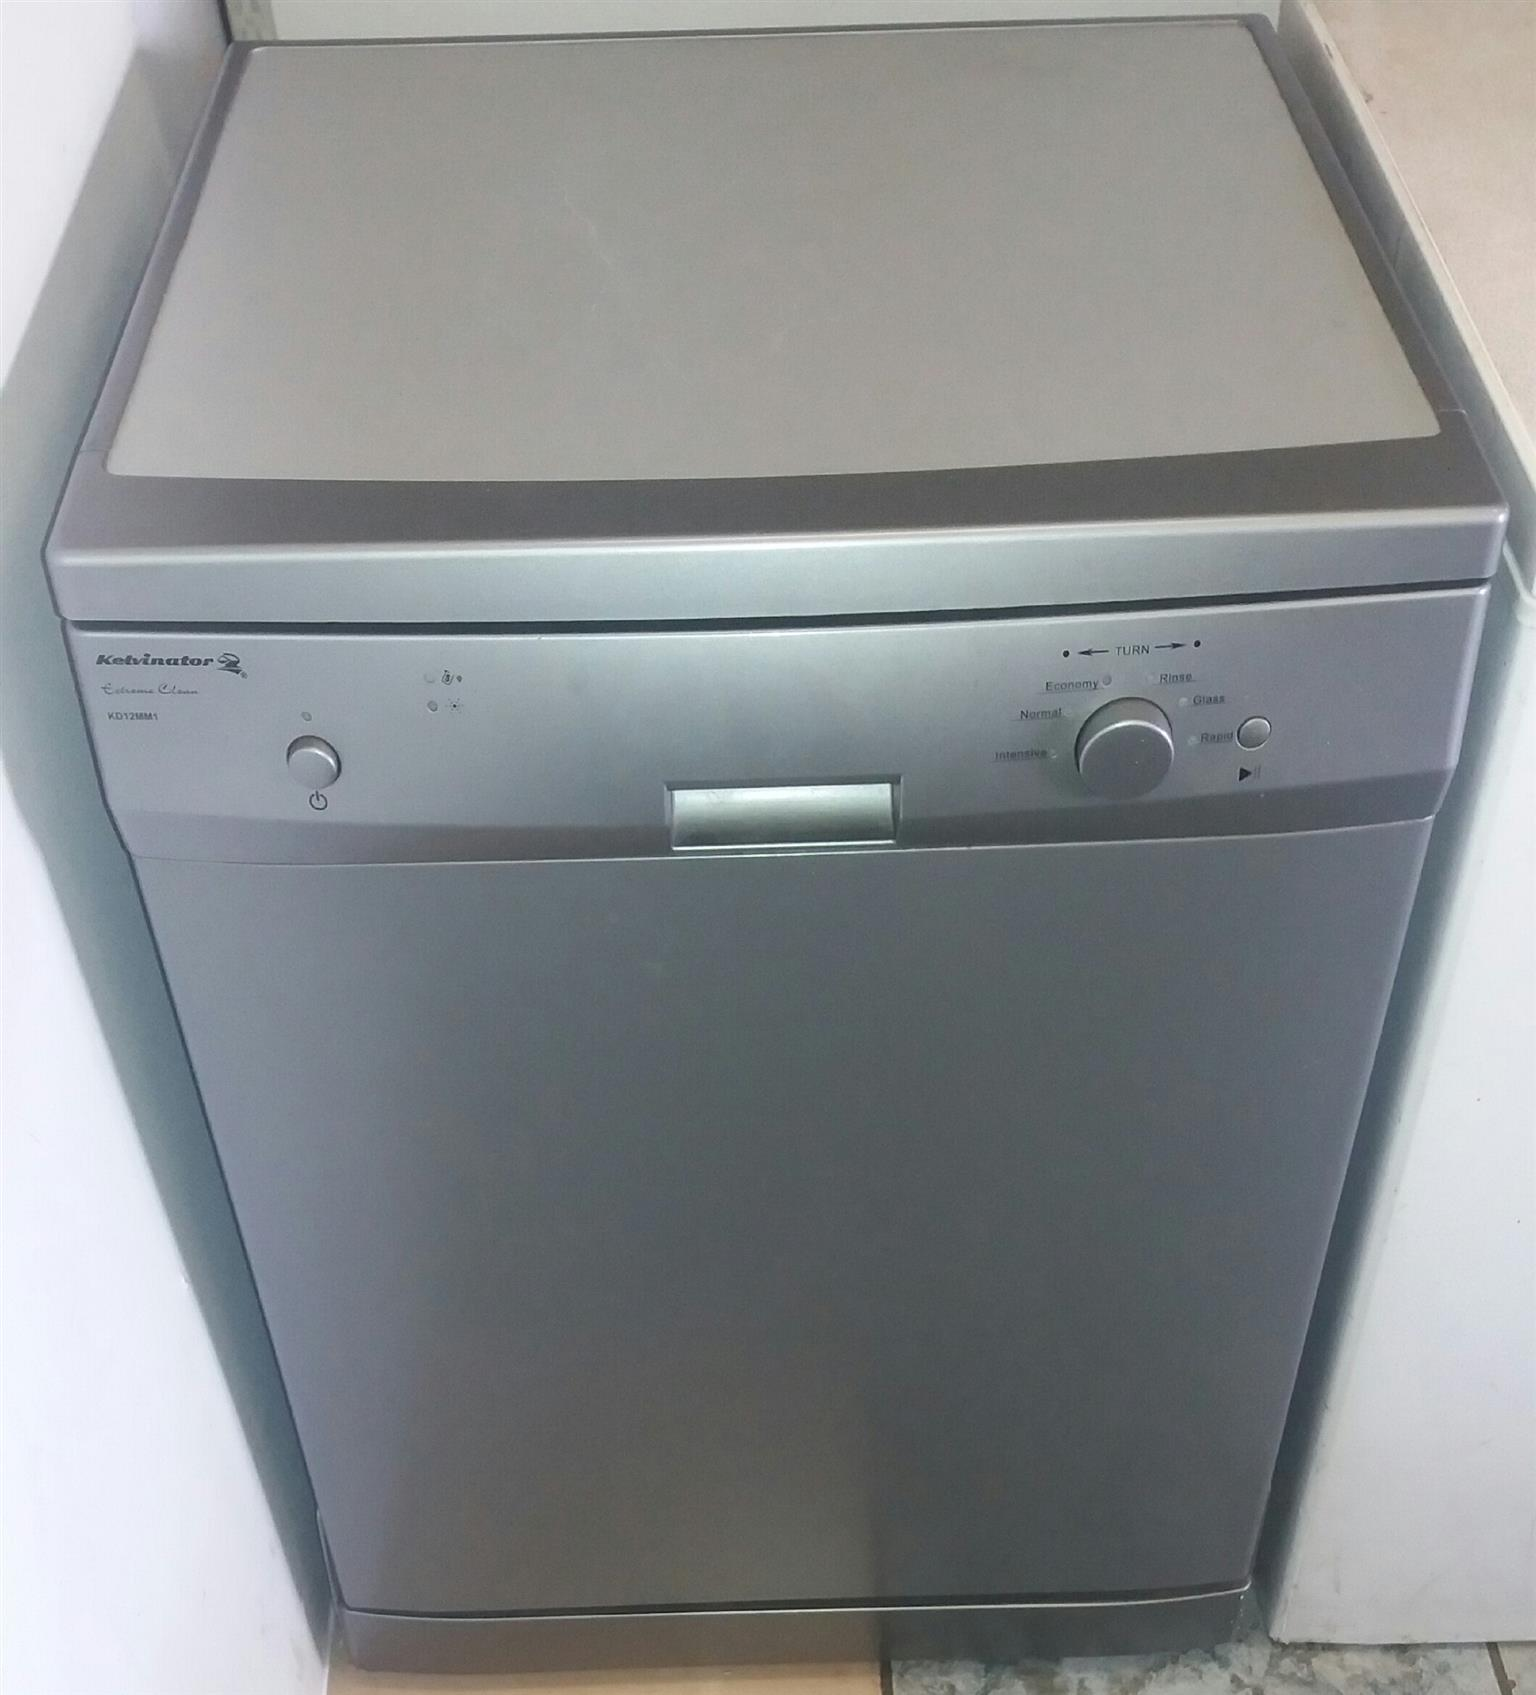 Kelvinator Dishwasher KD12MM1 Silver in color in pristine working ...